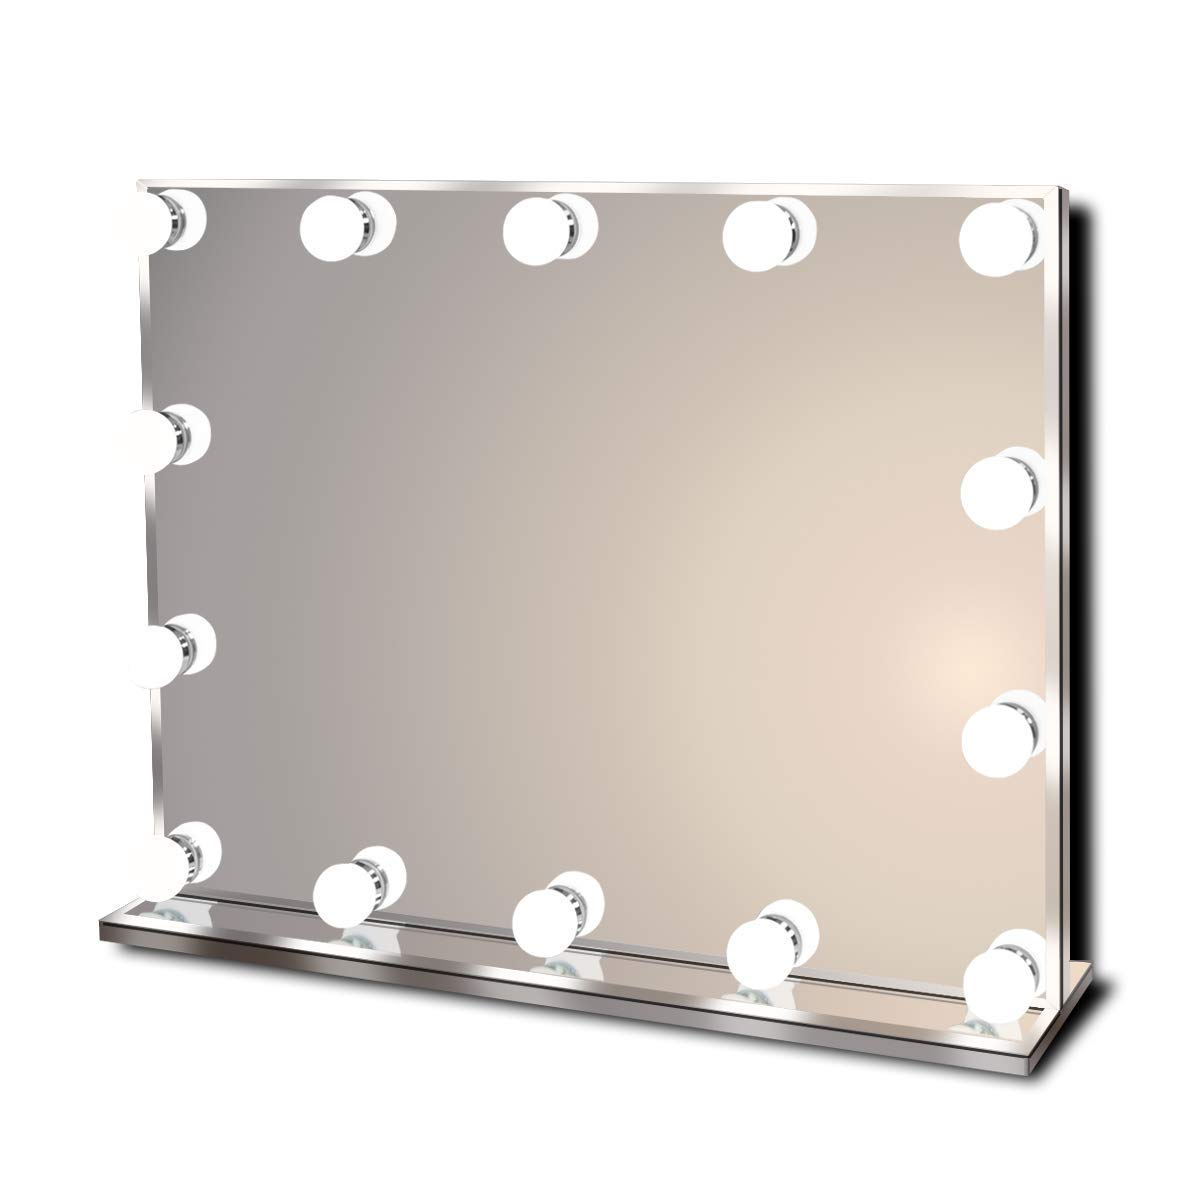 Make up station with vanity mirror